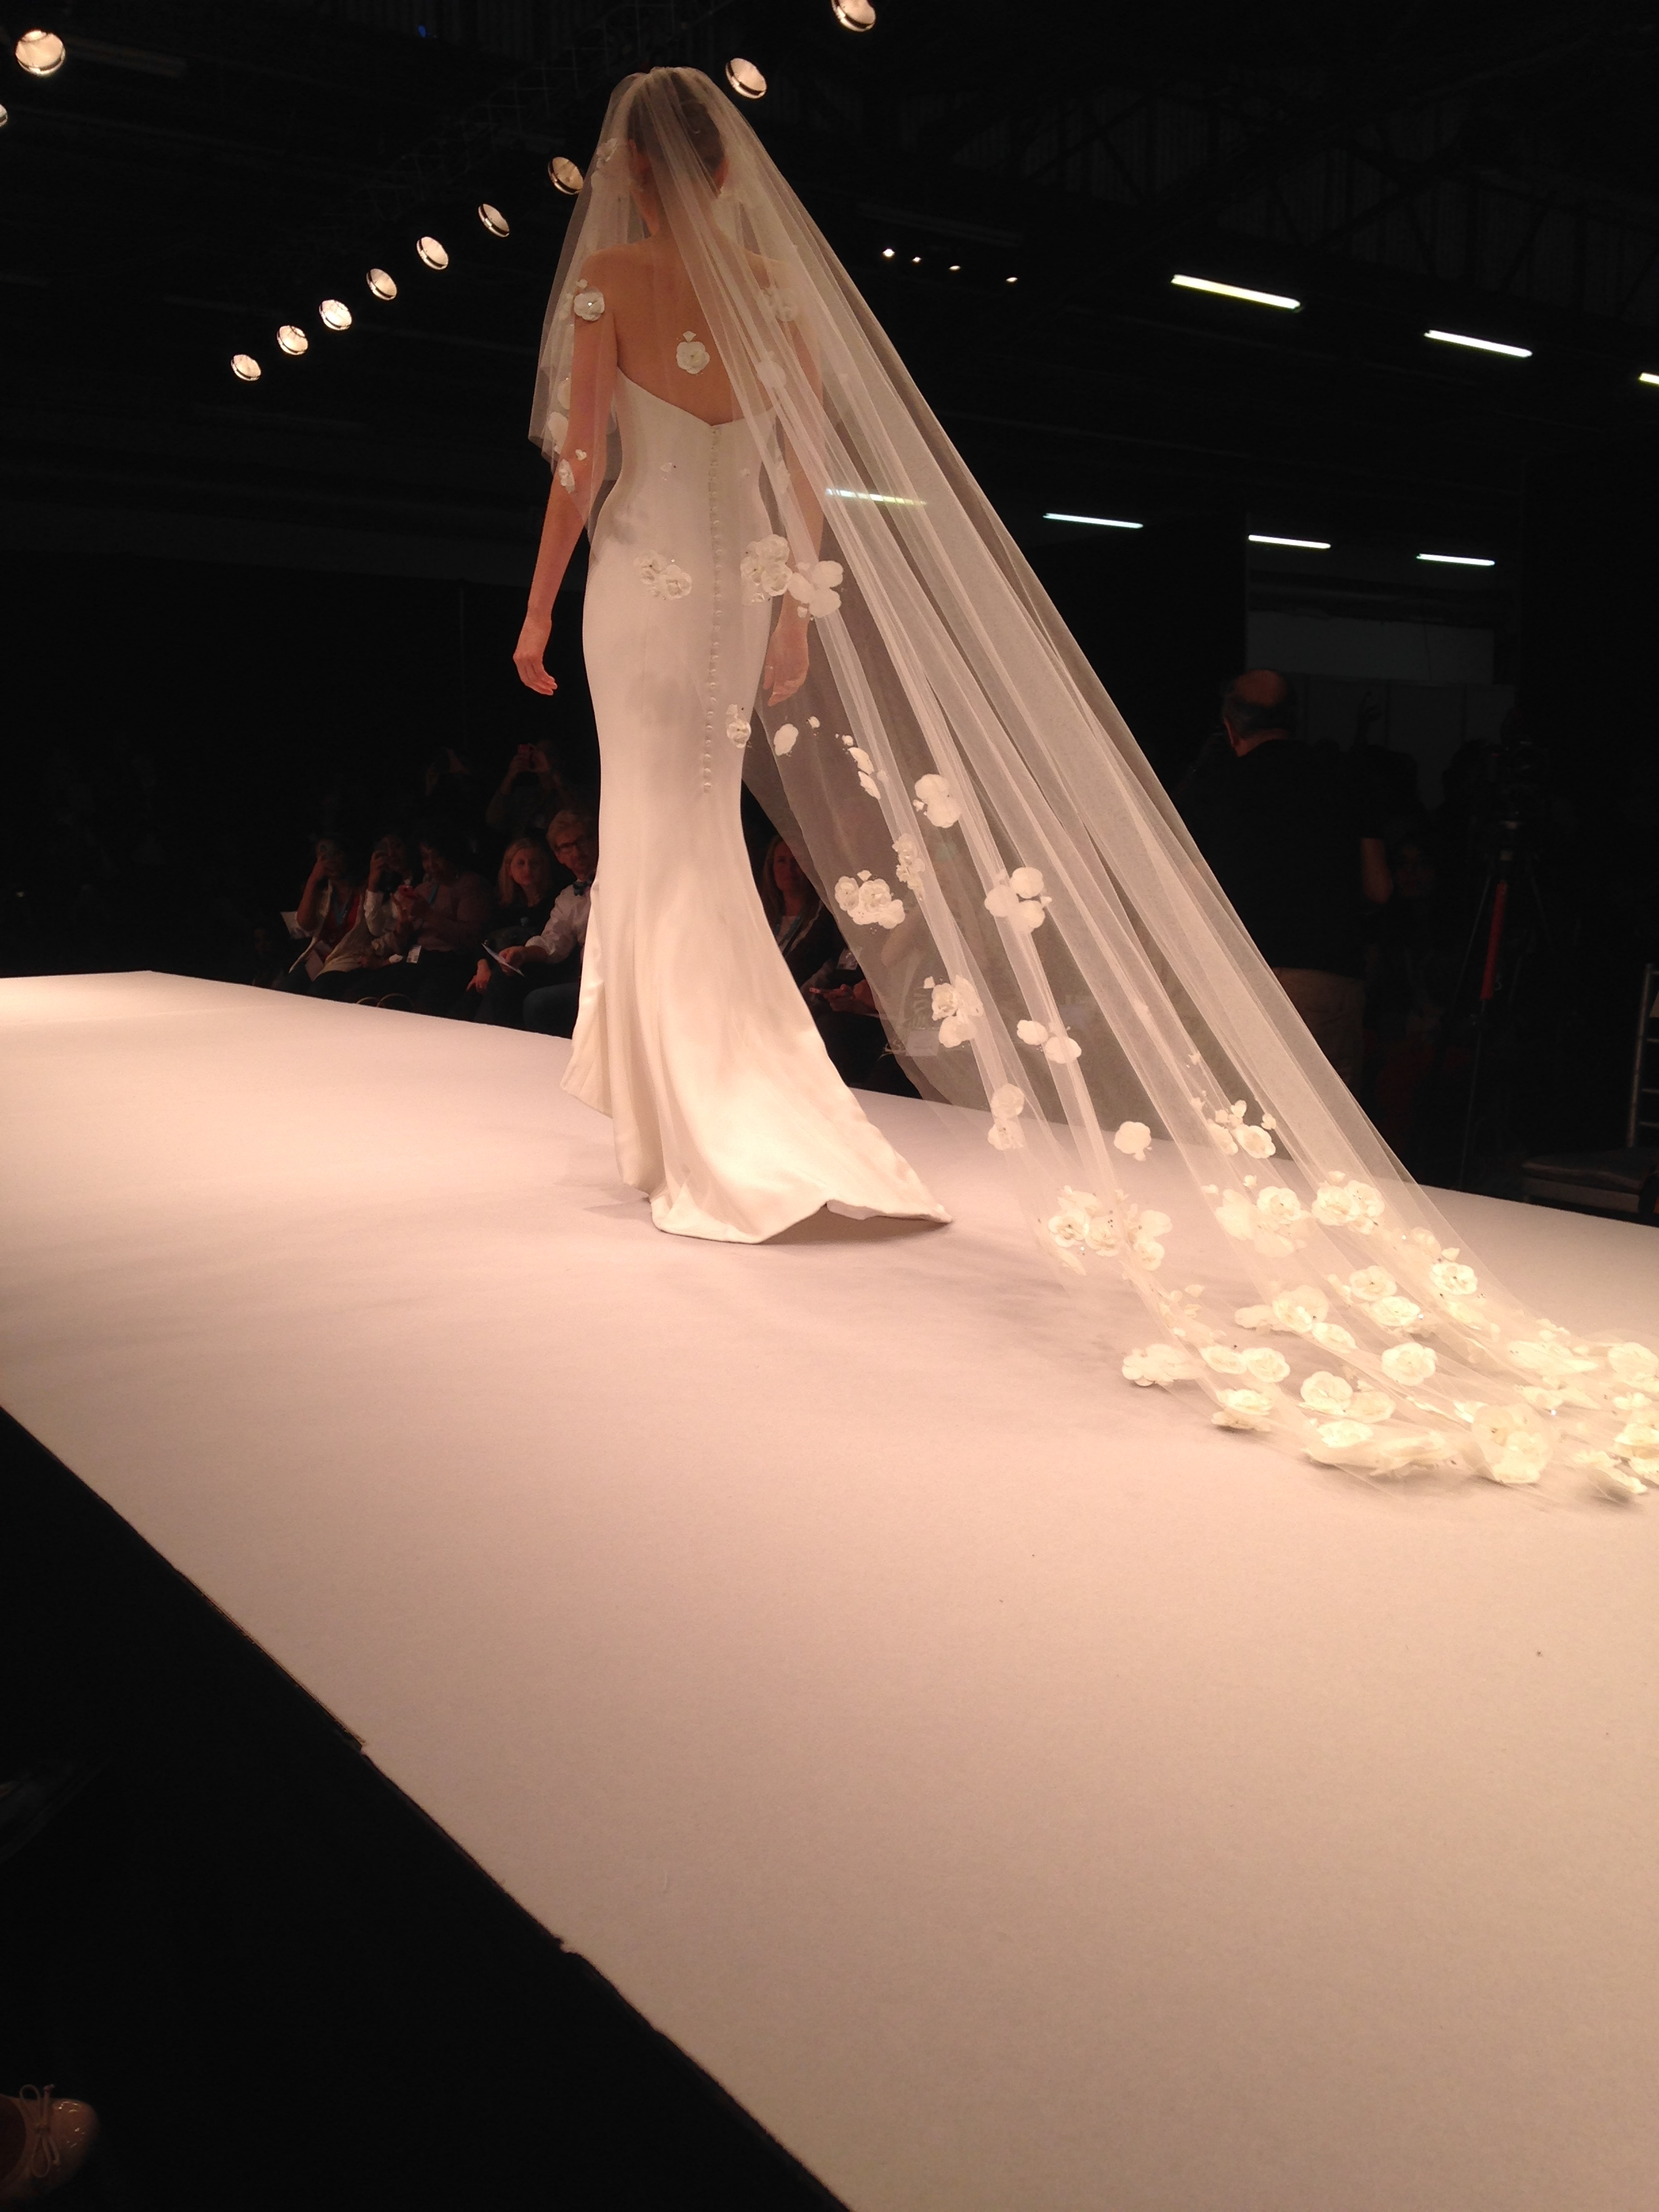 Elen Henderson's Garden Veil paired with a stunning gown from  Sassi Holford  recently wowed the crowd at the  New York International Bridal Week  Fashion Show